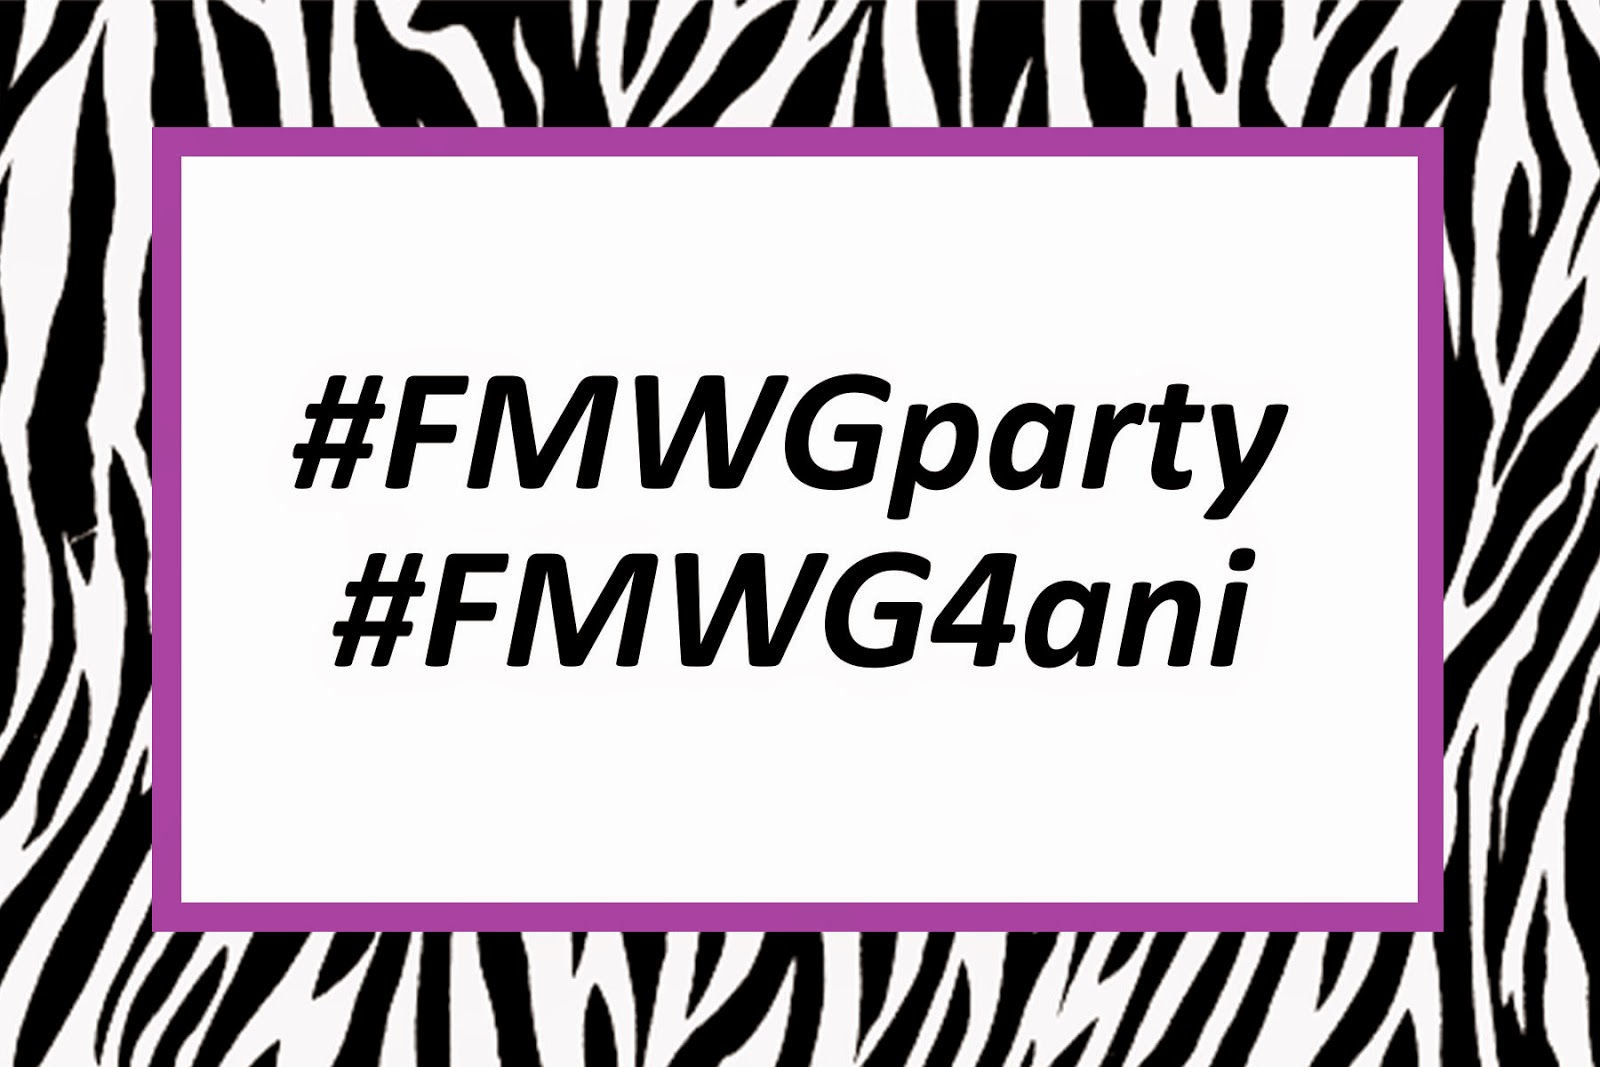 teaser1fmwgparty